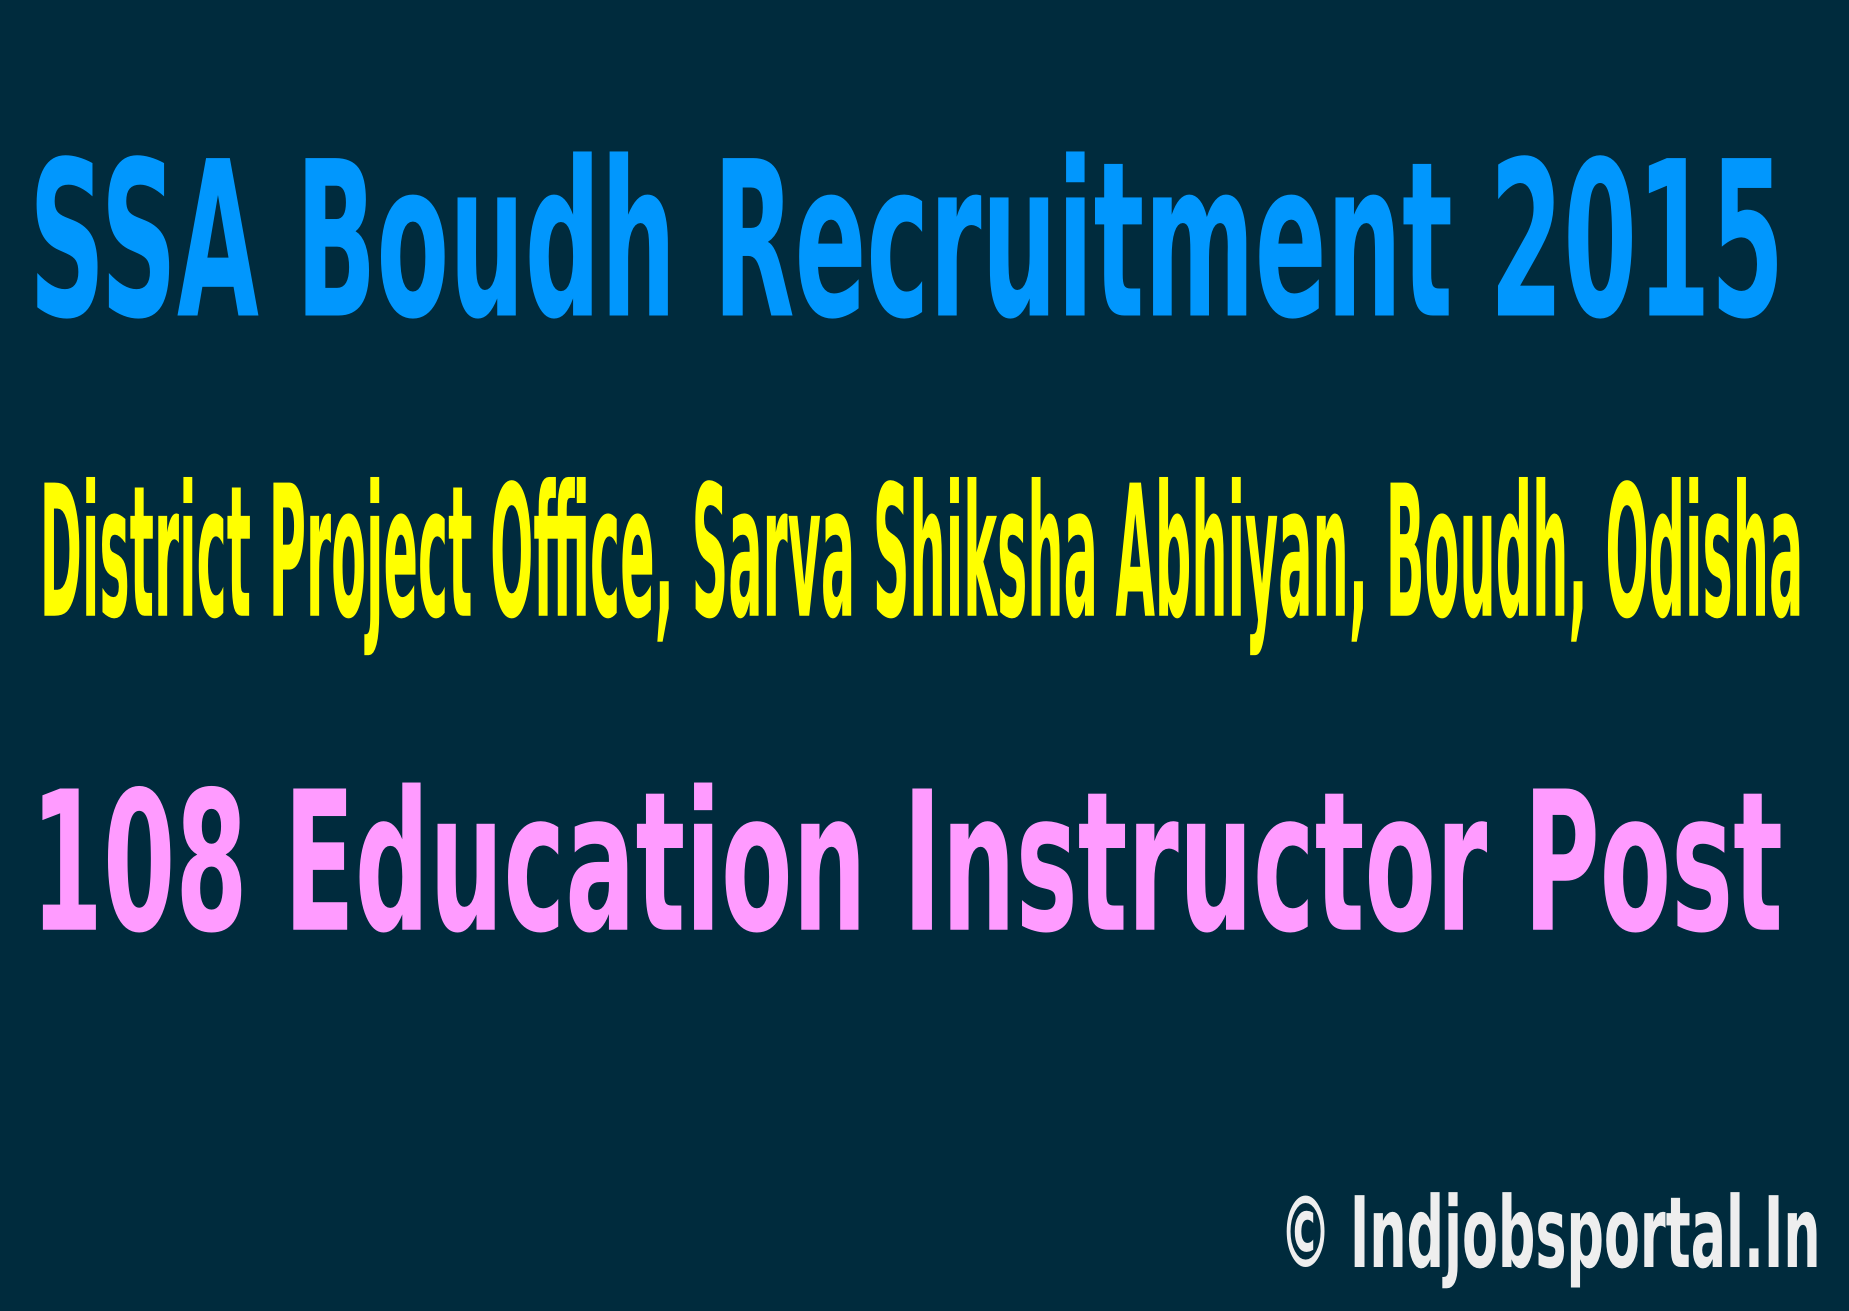 SSA Boudh Recruitment 2015 Apply Online For 108 Education Instructor Post